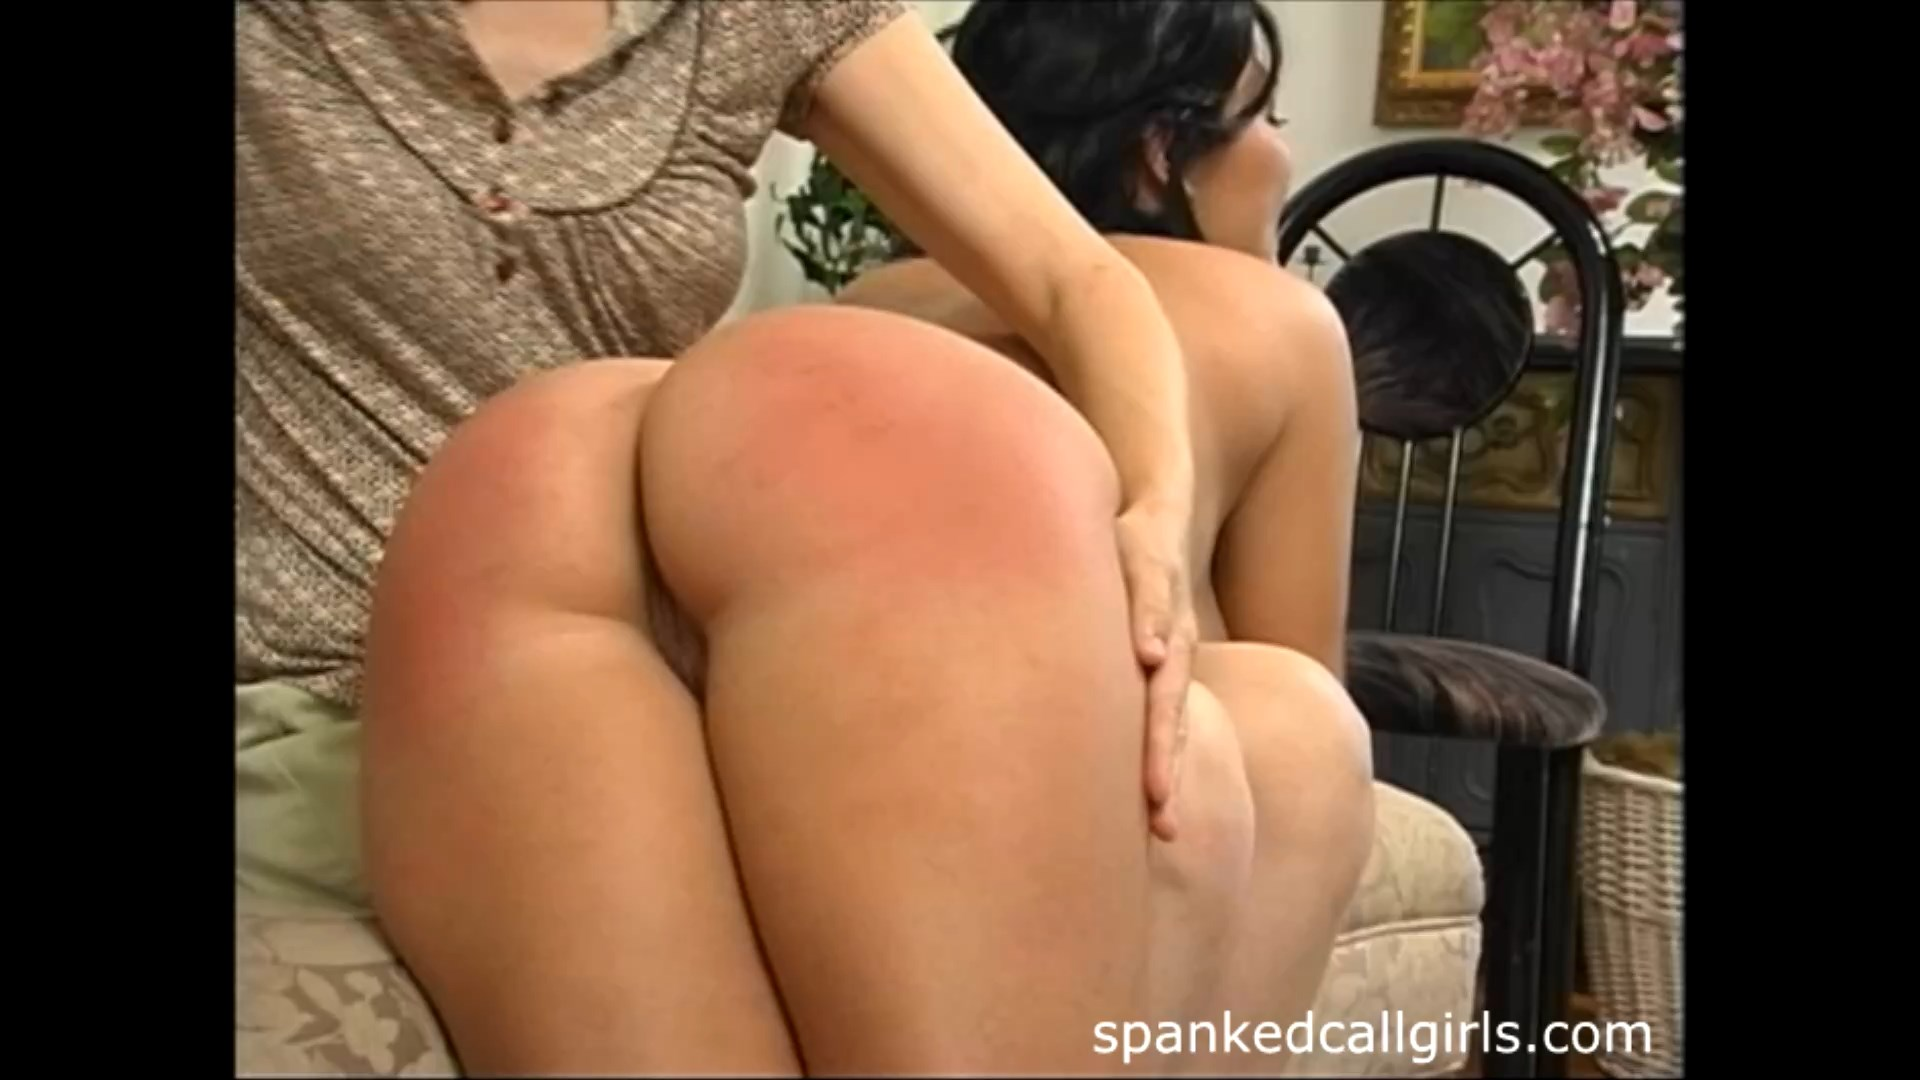 Spanked Call Girls – MP4/Full HD – Dames, Kylee Reese – Clare Dames Butt Spanking and Plug REMASTERED